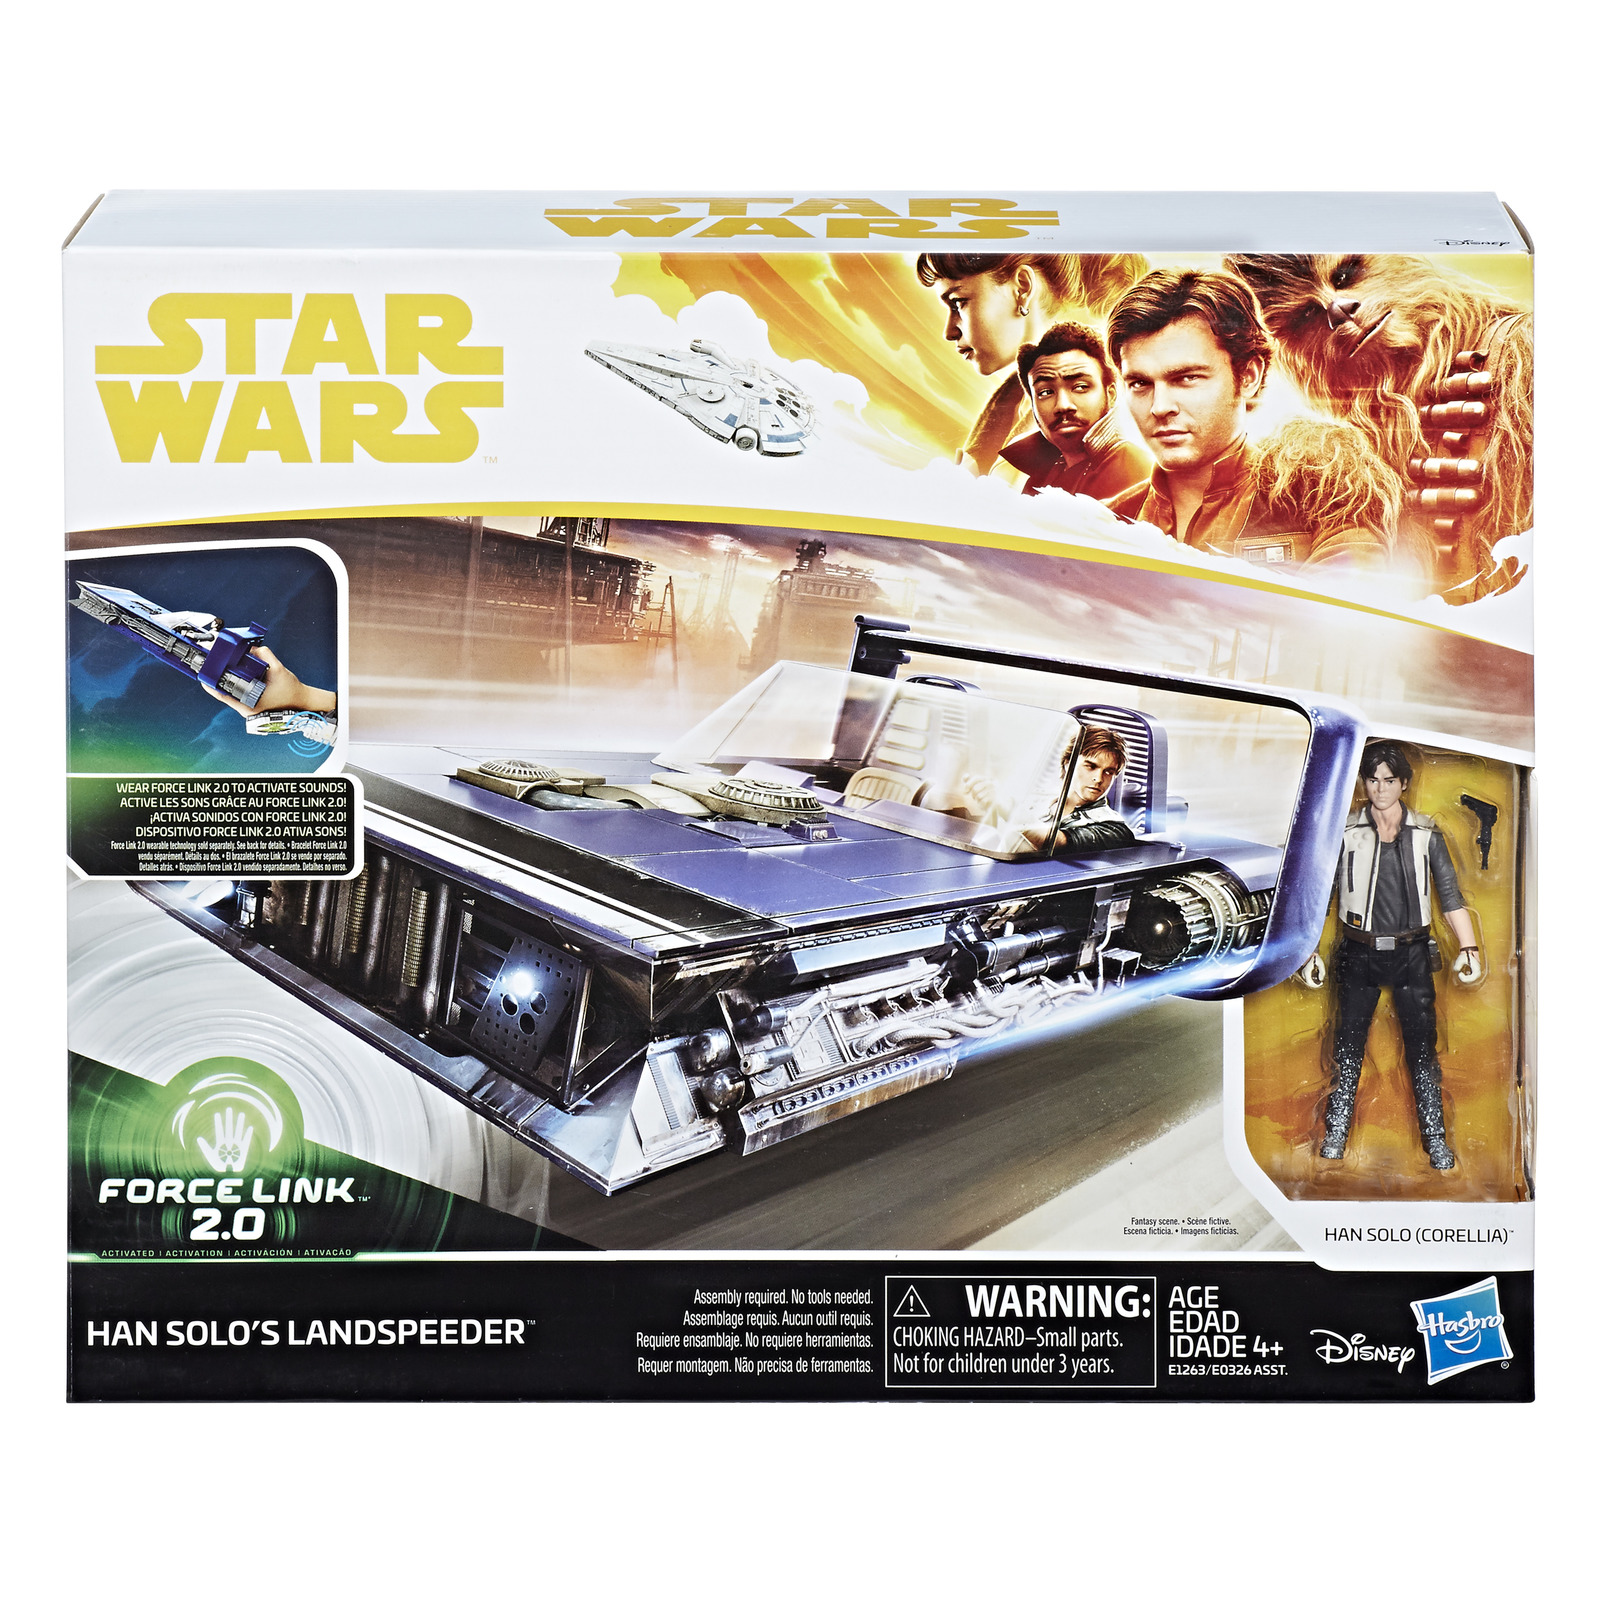 Star Wars: Force Link 2.0 - Han Solo (Corellia) and Land Speeder image